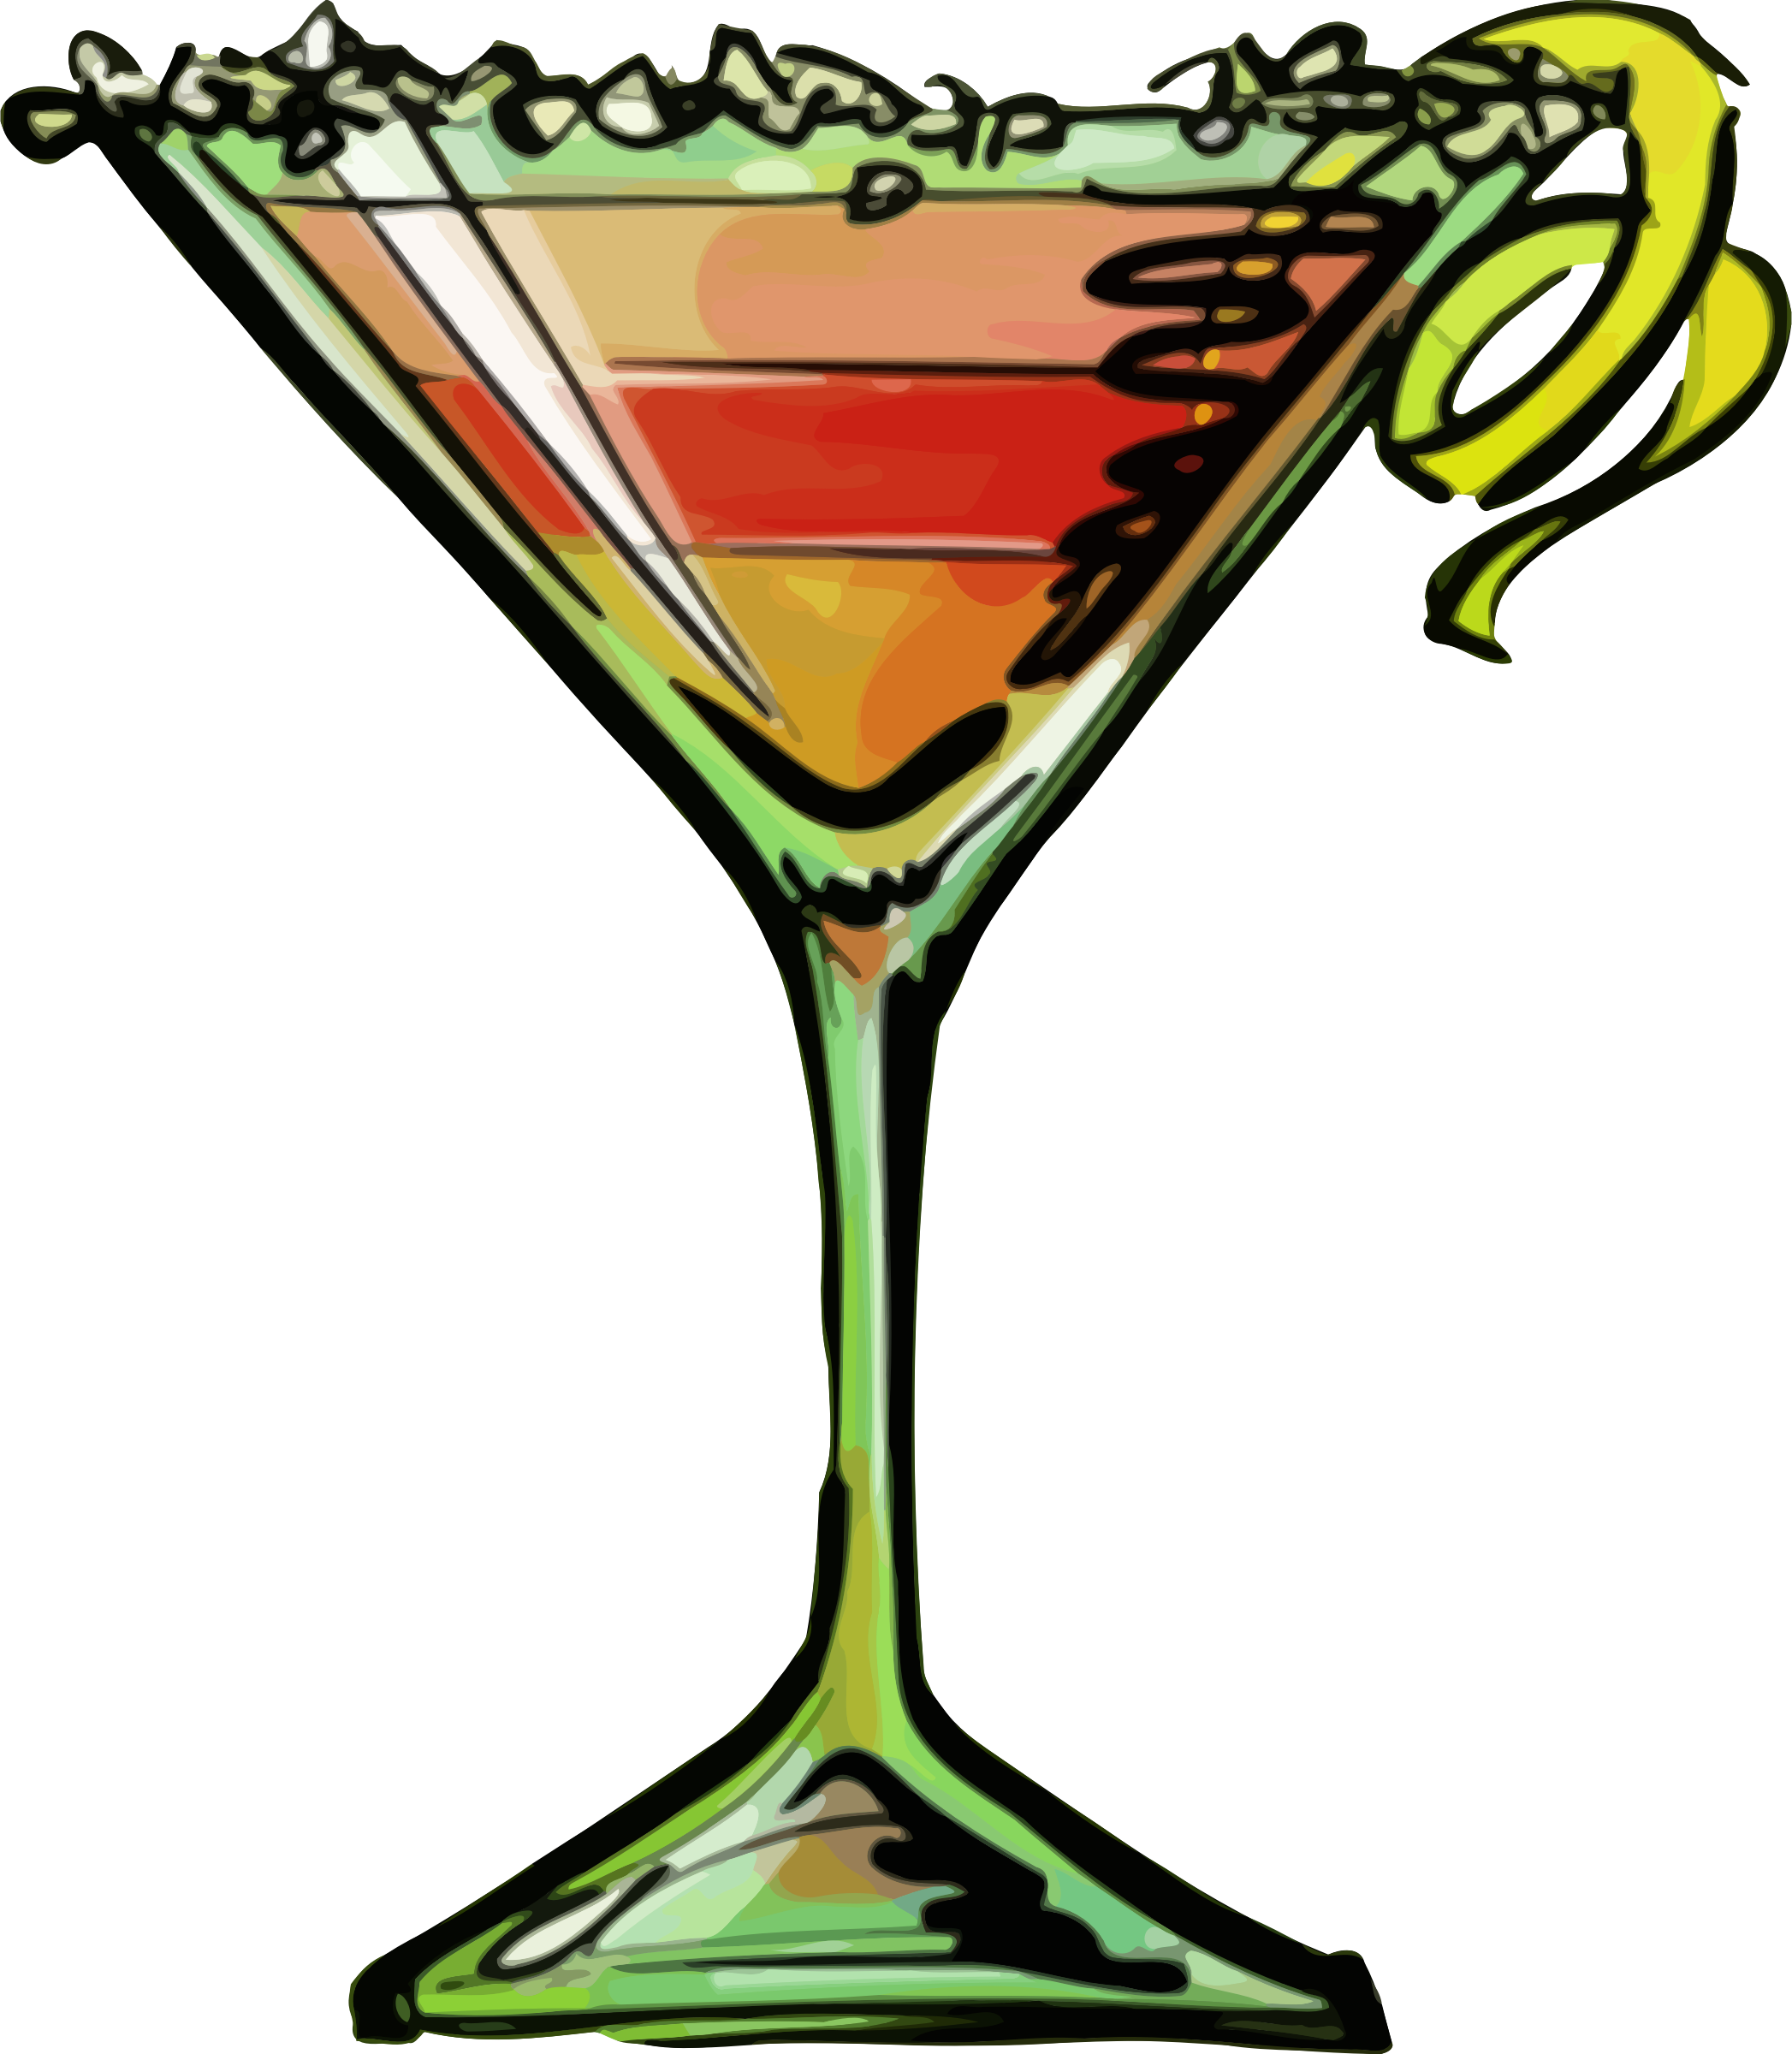 Cosmopolitan drink images clip. Cocktails clipart cosmo